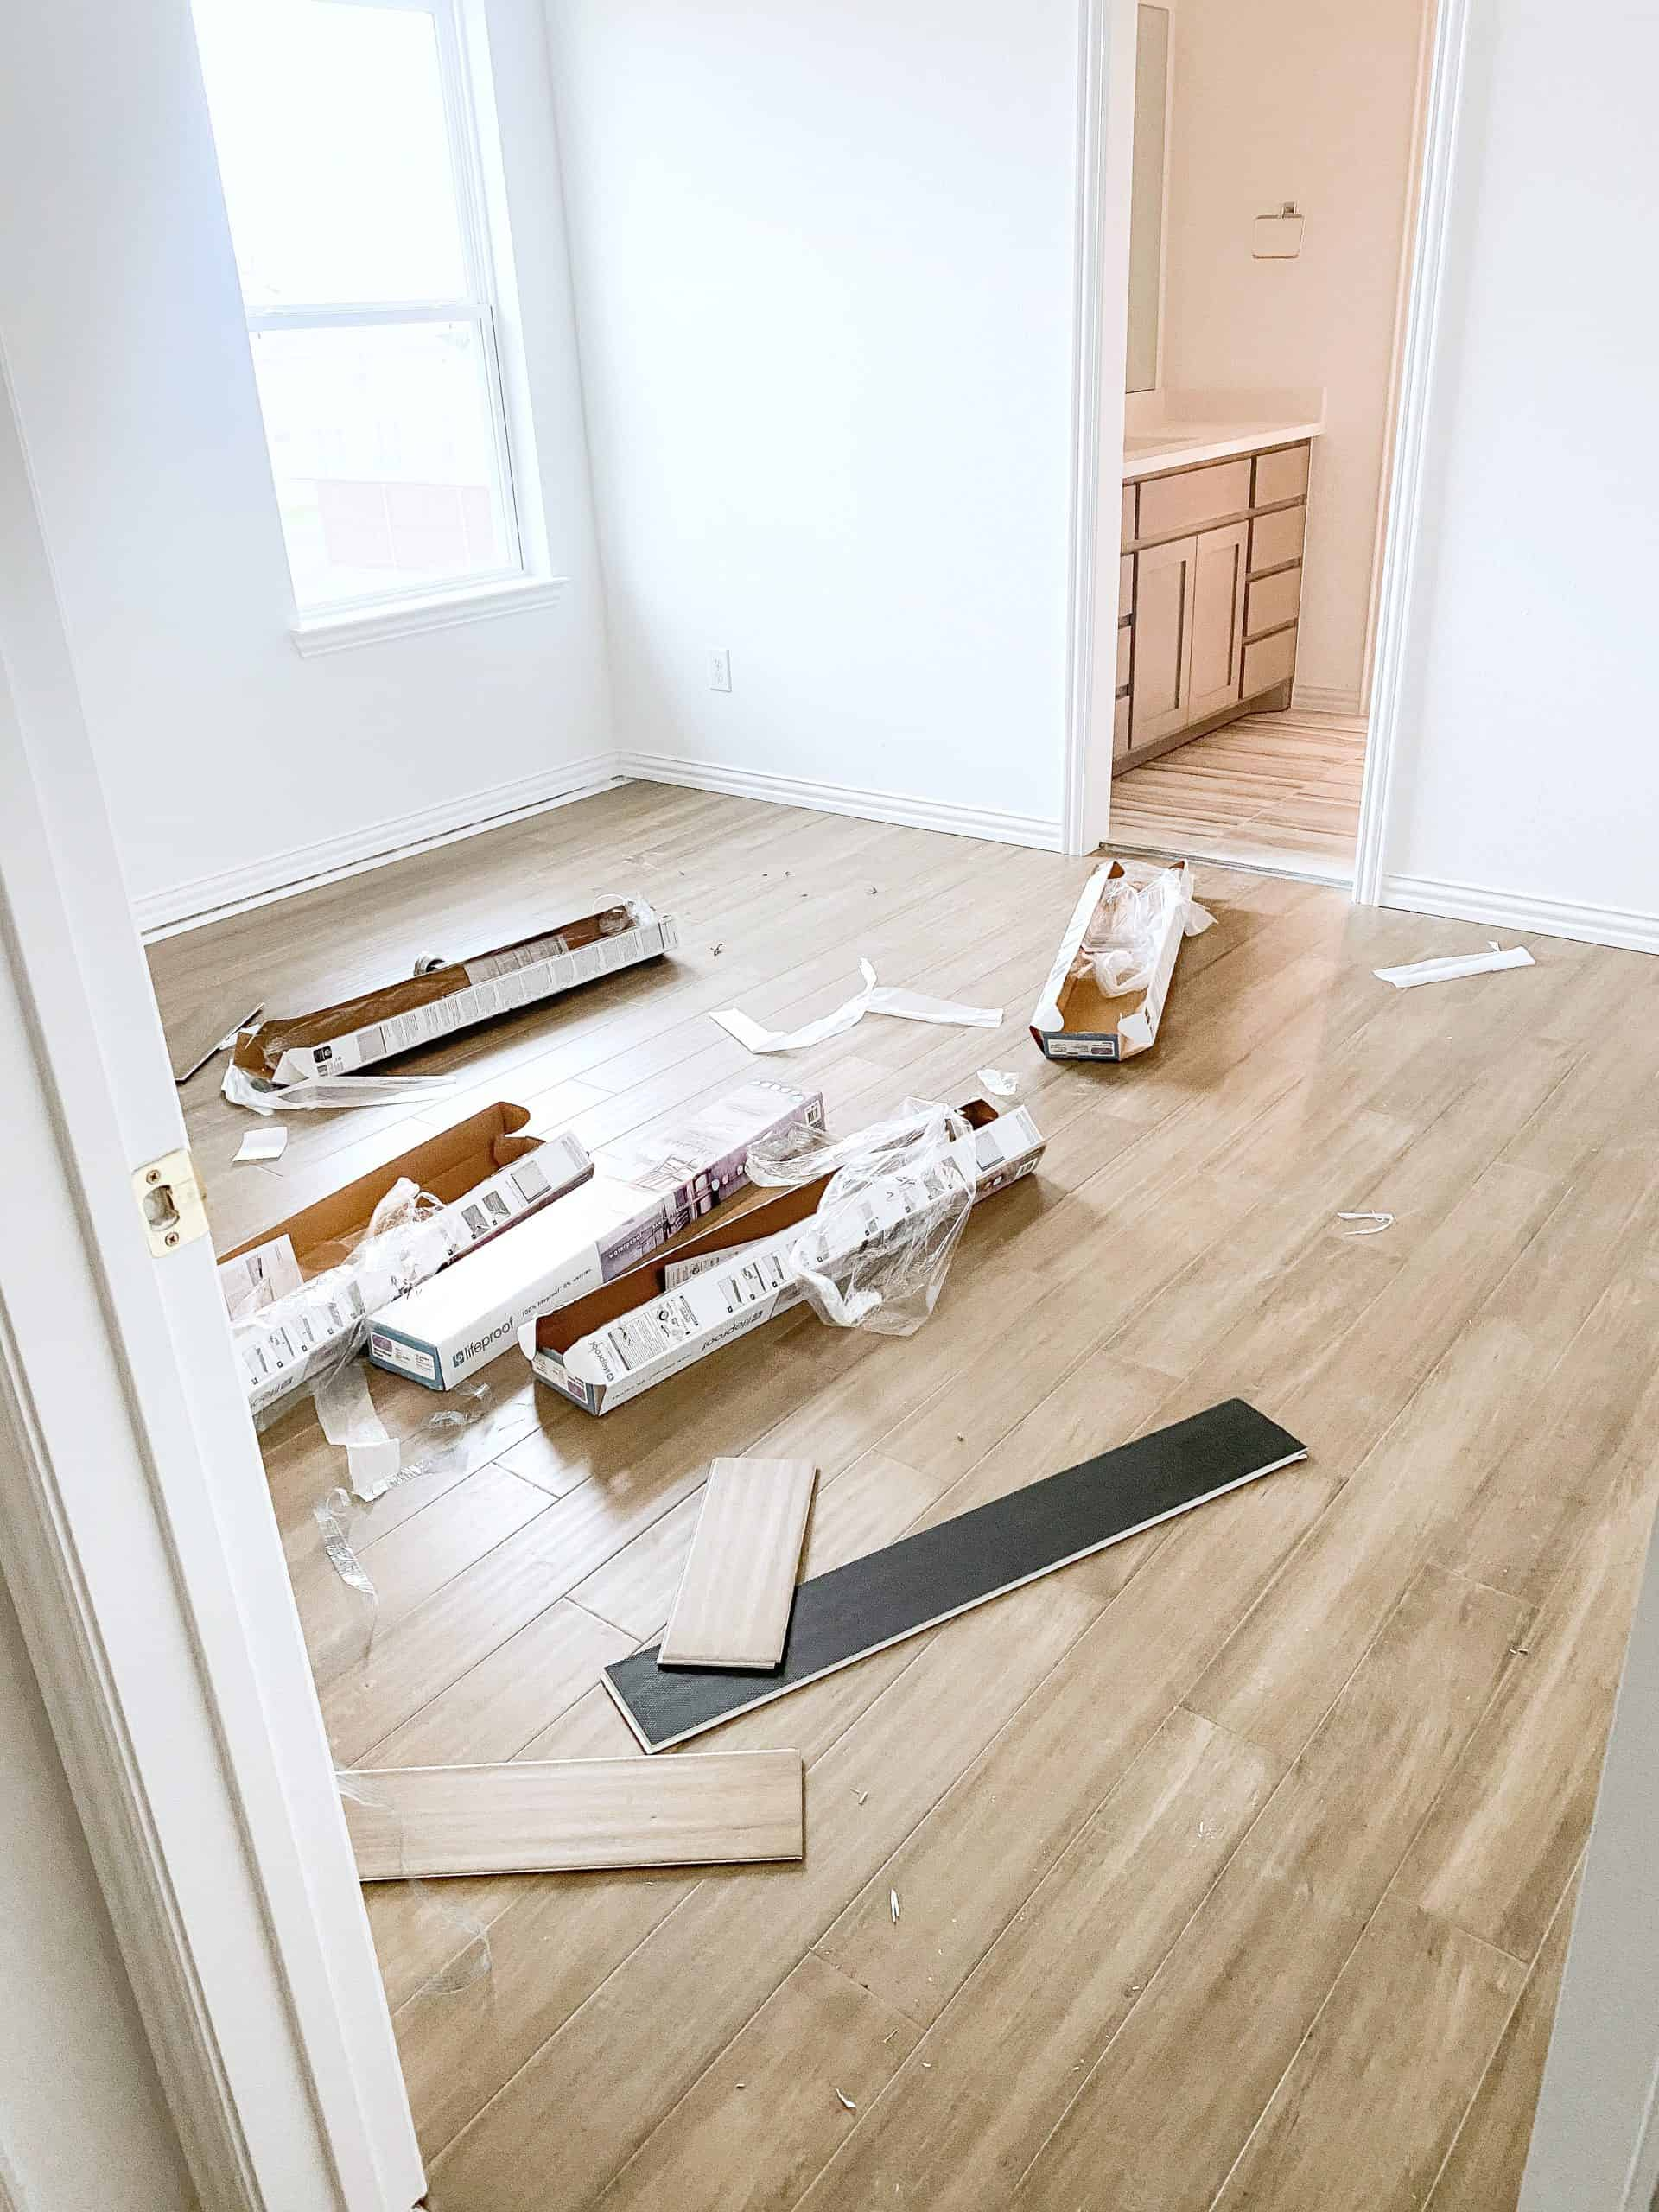 Wood Floor Installation by popular Dallas life and style blog, Glamorous Versatility: image of light wood floors being installed in a boy's room.